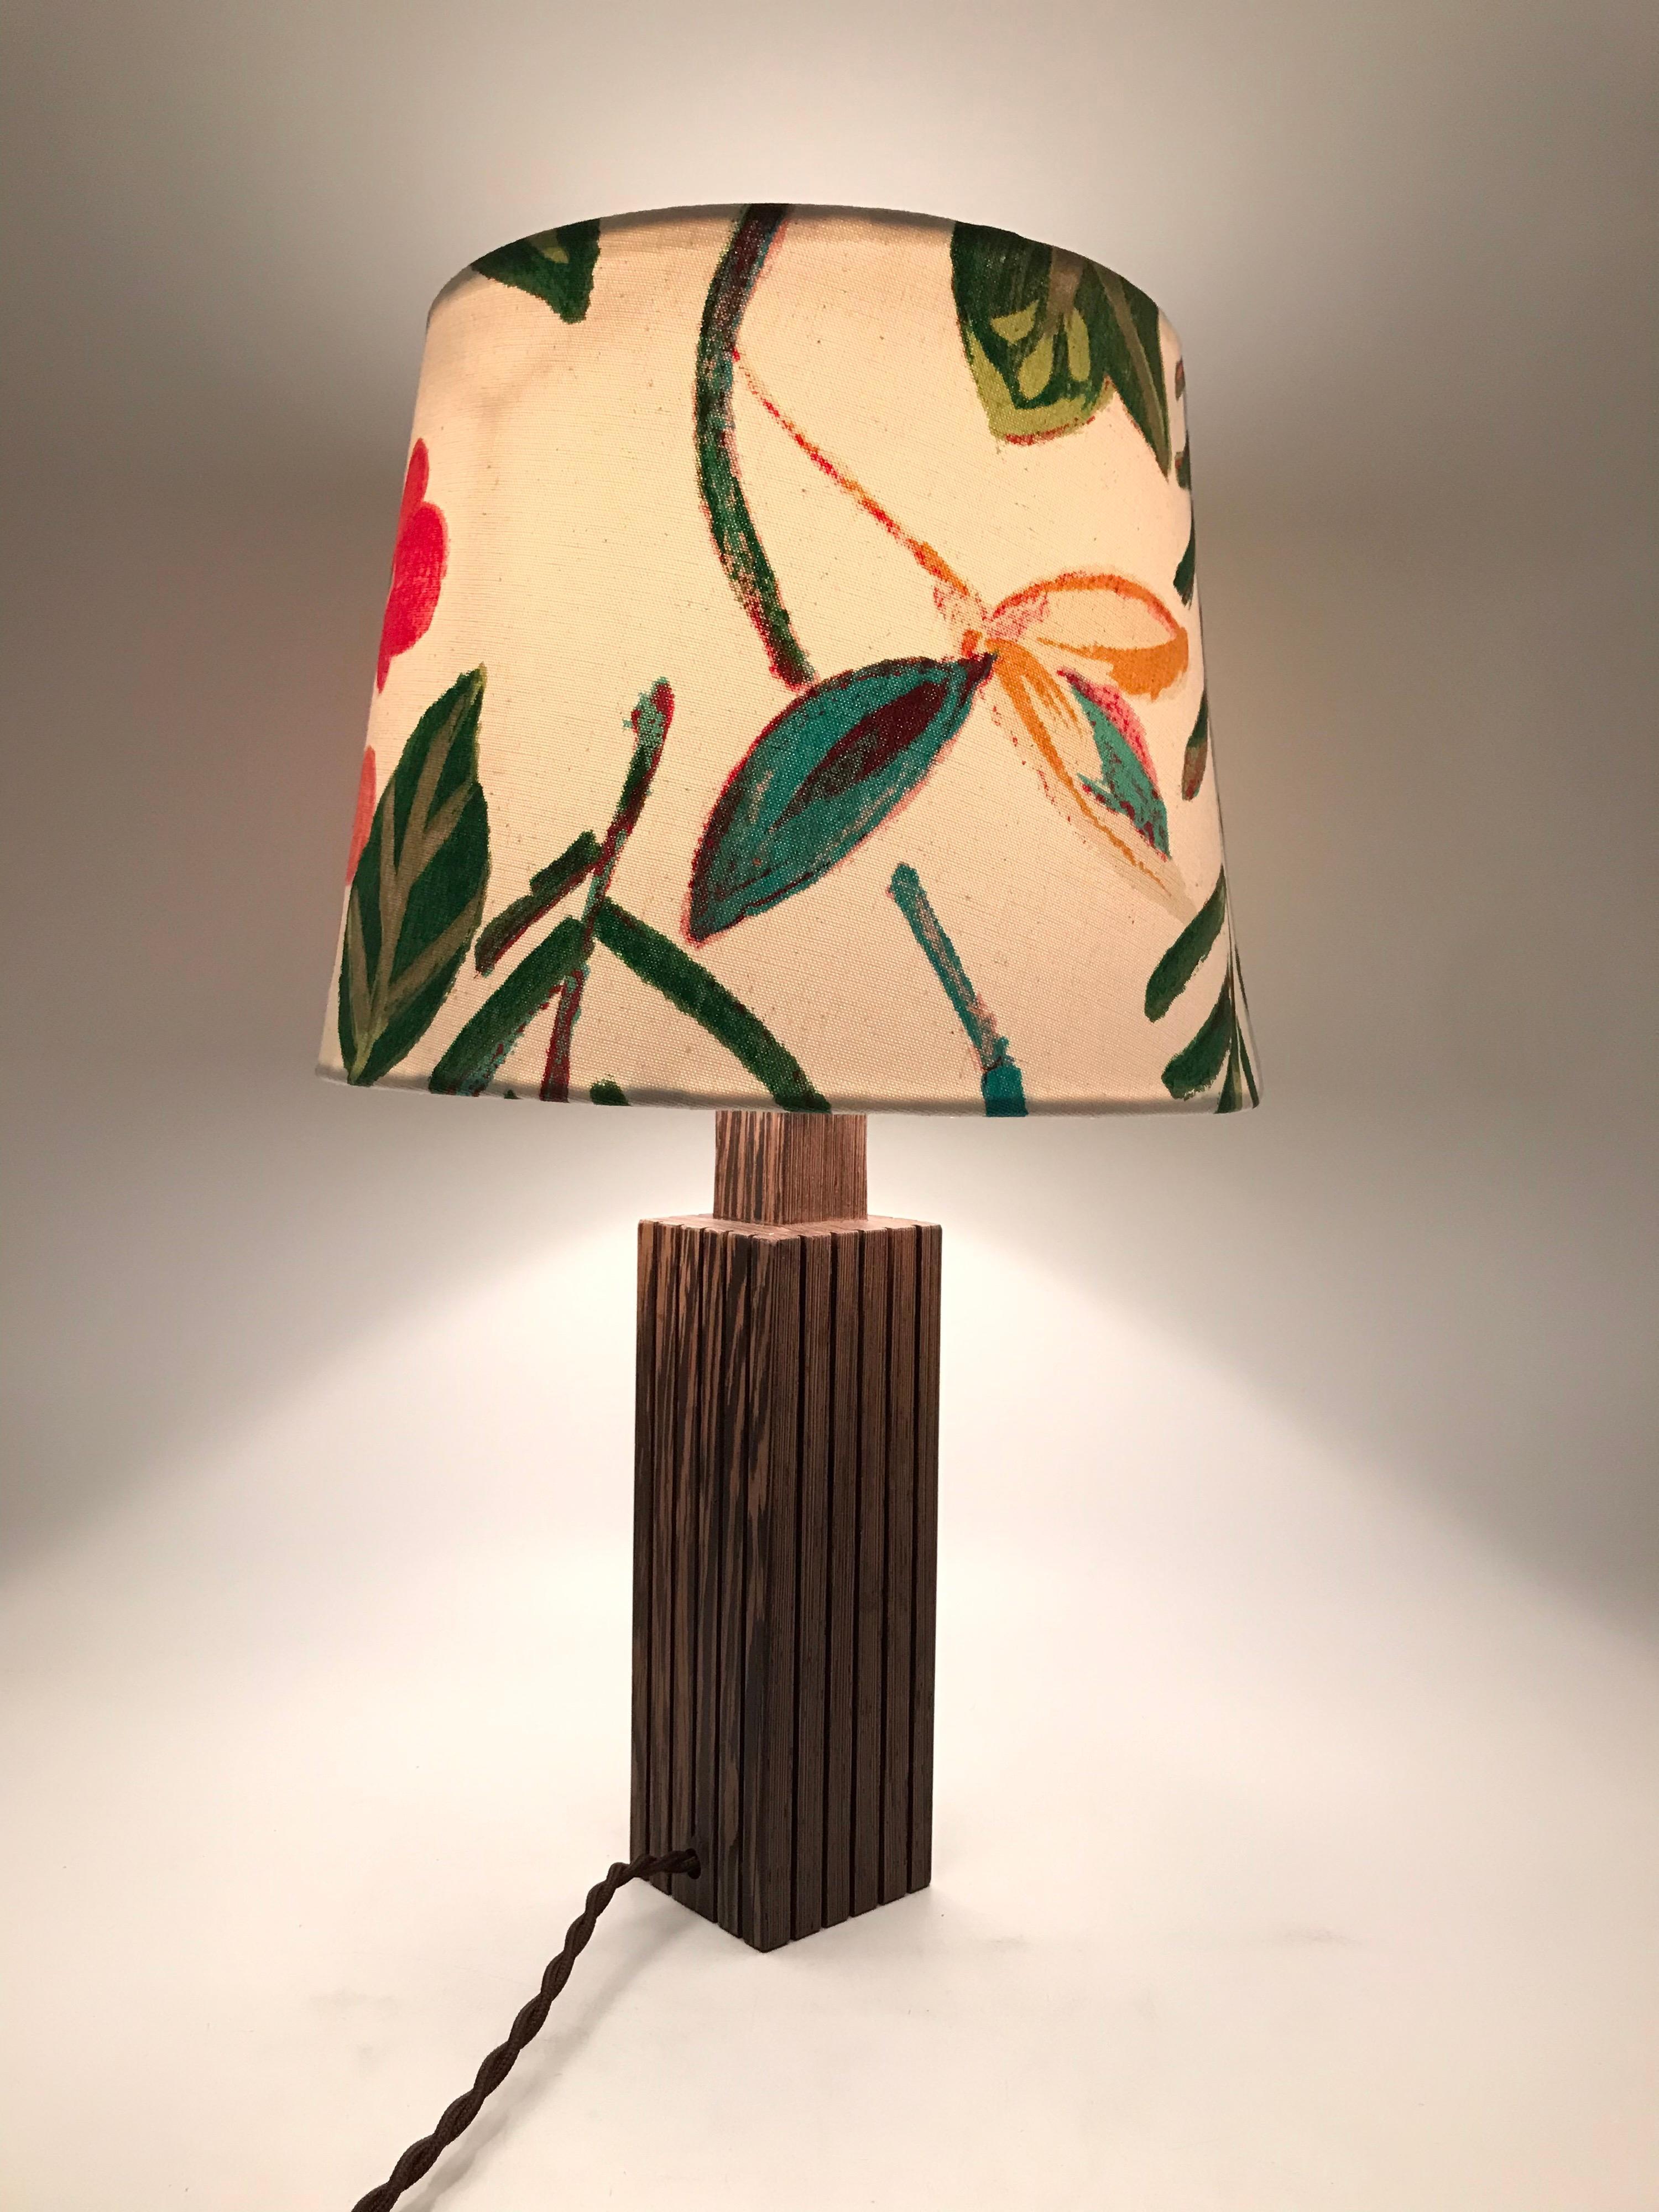 Vintage Mid Century Modern Mahogany Table Lamp With An Artbymay Lamp Shade For Sale At 1stdibs